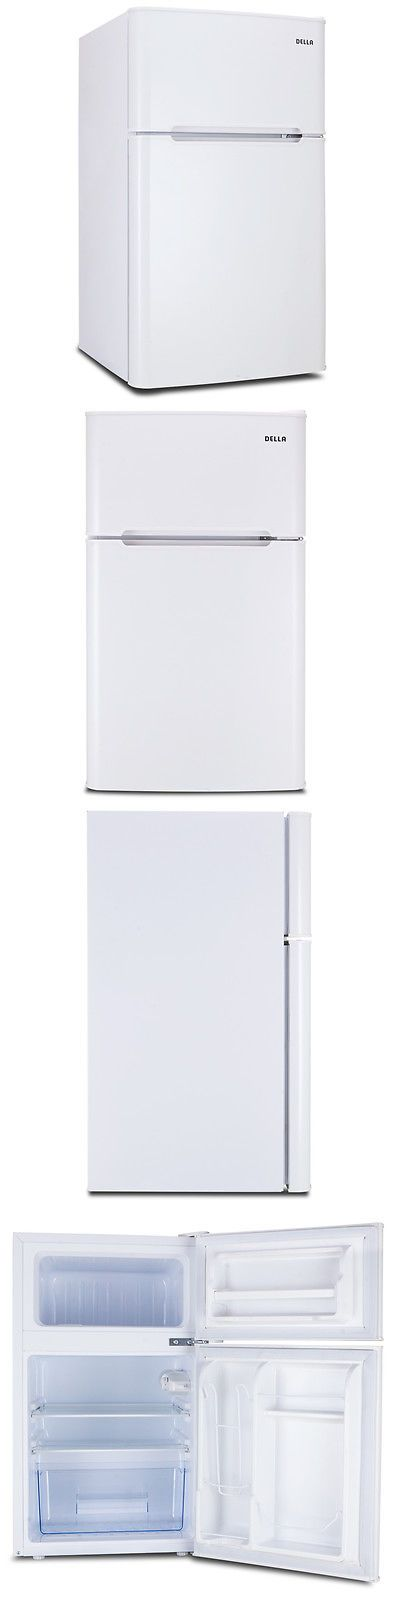 Major Appliances: 3.2 Cu Ft Mini Refrigerator And Freezer Small Compact Dorm Office Fridge White -> BUY IT NOW ONLY: $139.97 on eBay!